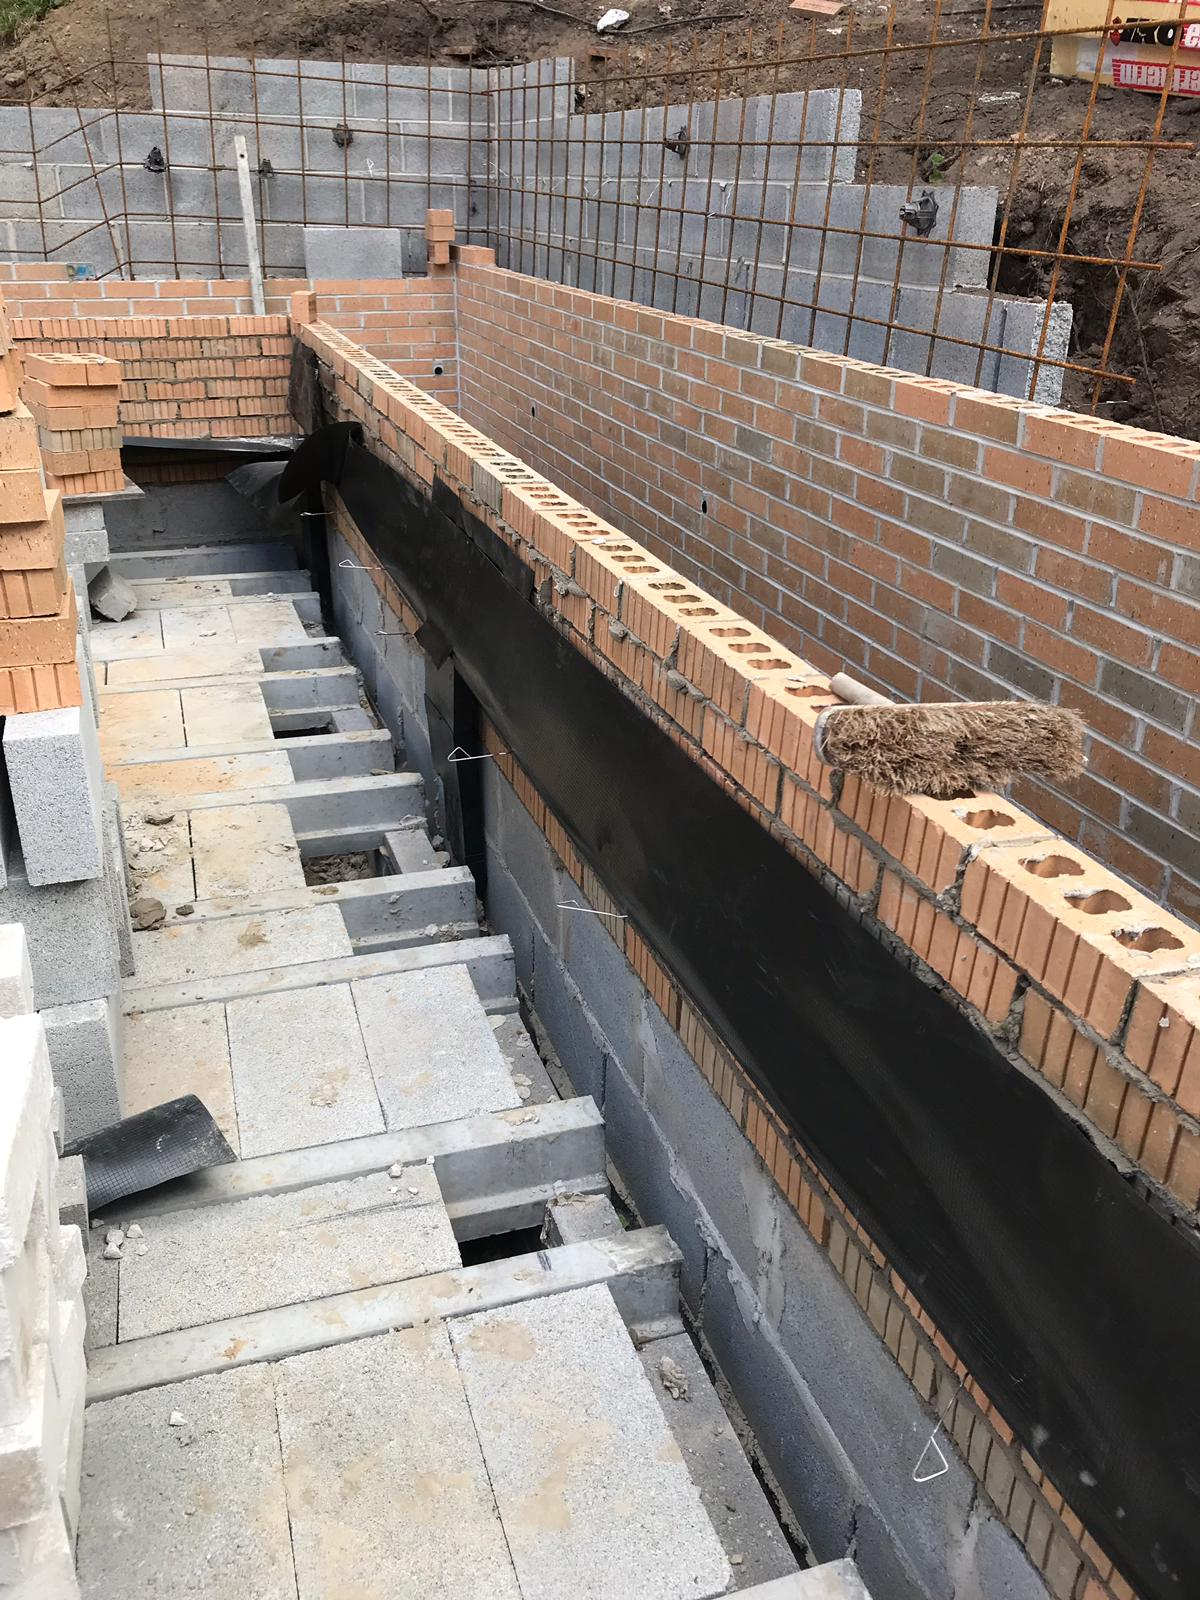 Super-structure brickwork